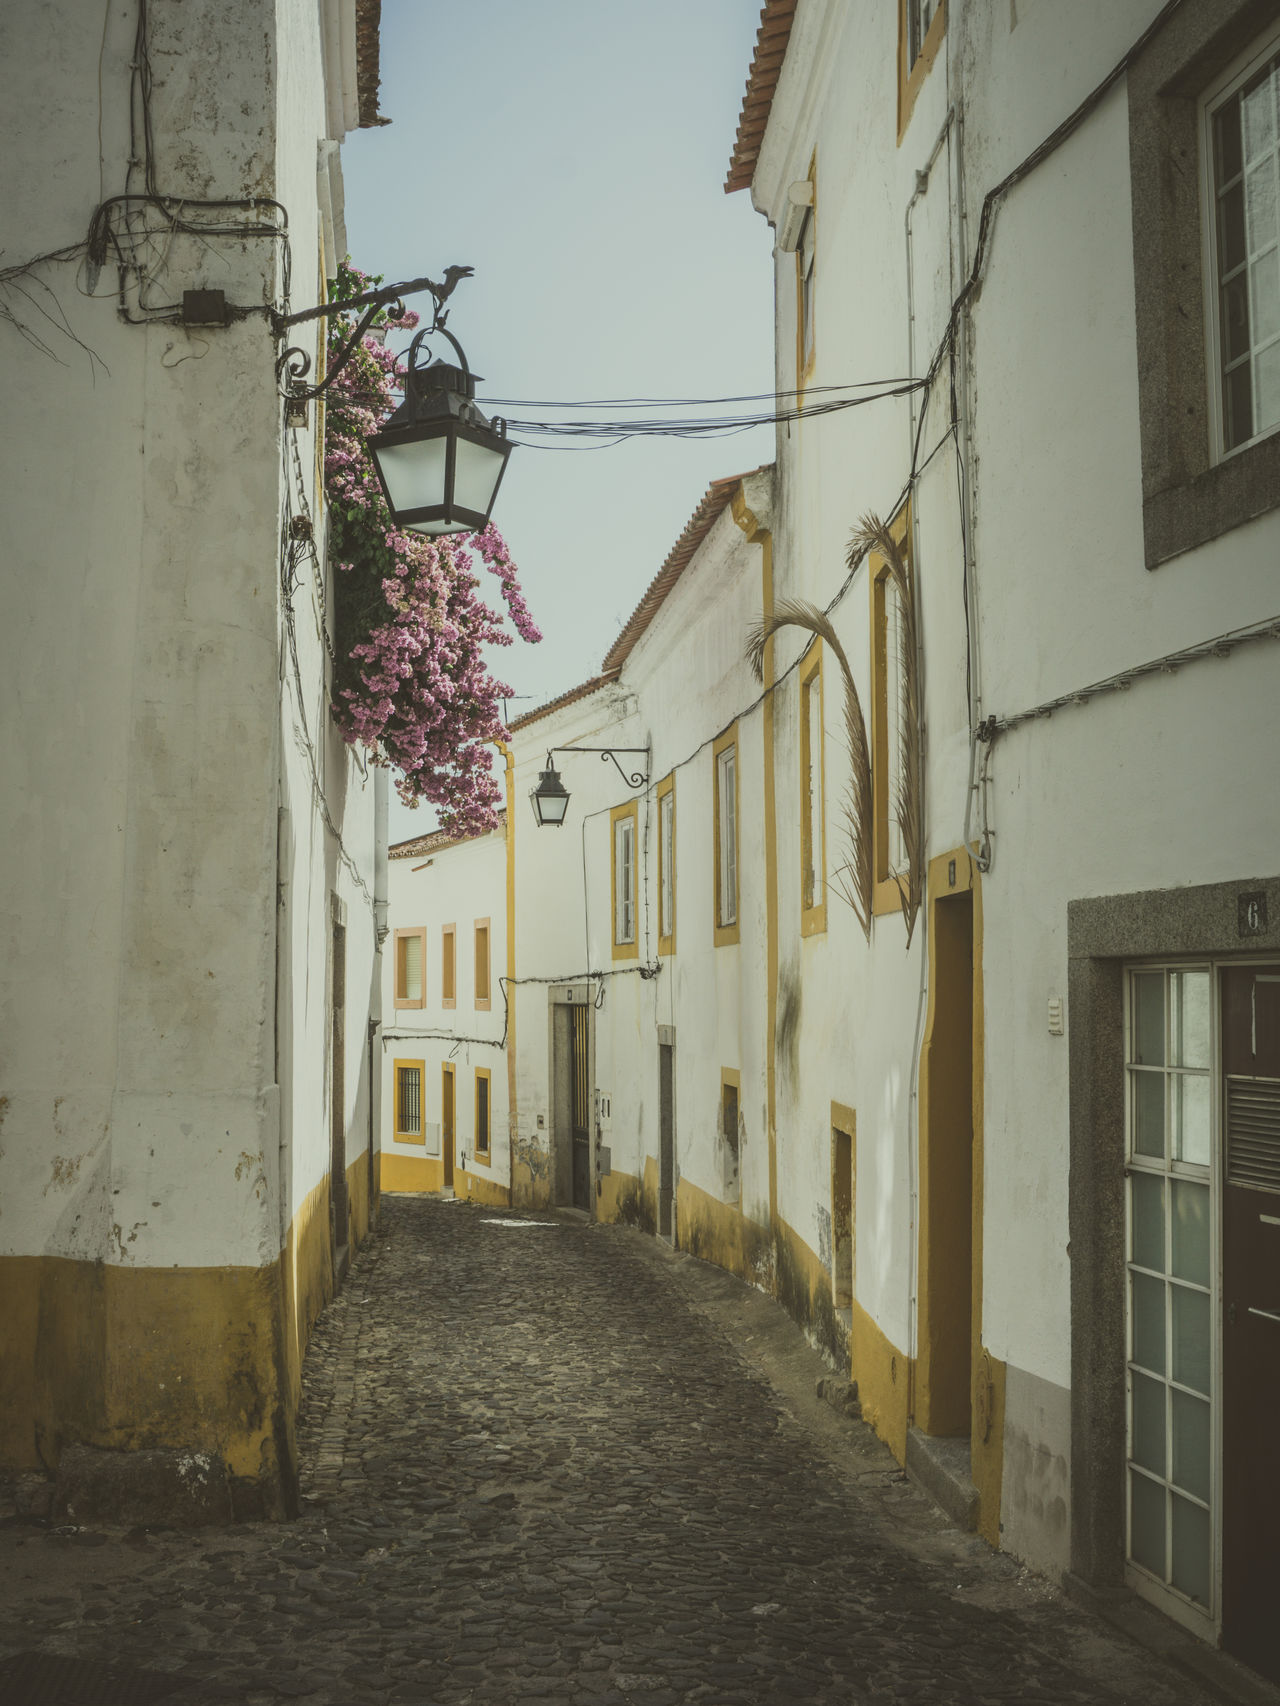 Alley Building Exterior City Narrow Nasmgraphia No People Portugal Portugaldenorteasul Portugaligers Residential District Residential Structure The Way Forward Vanishing Point Walkway Évora